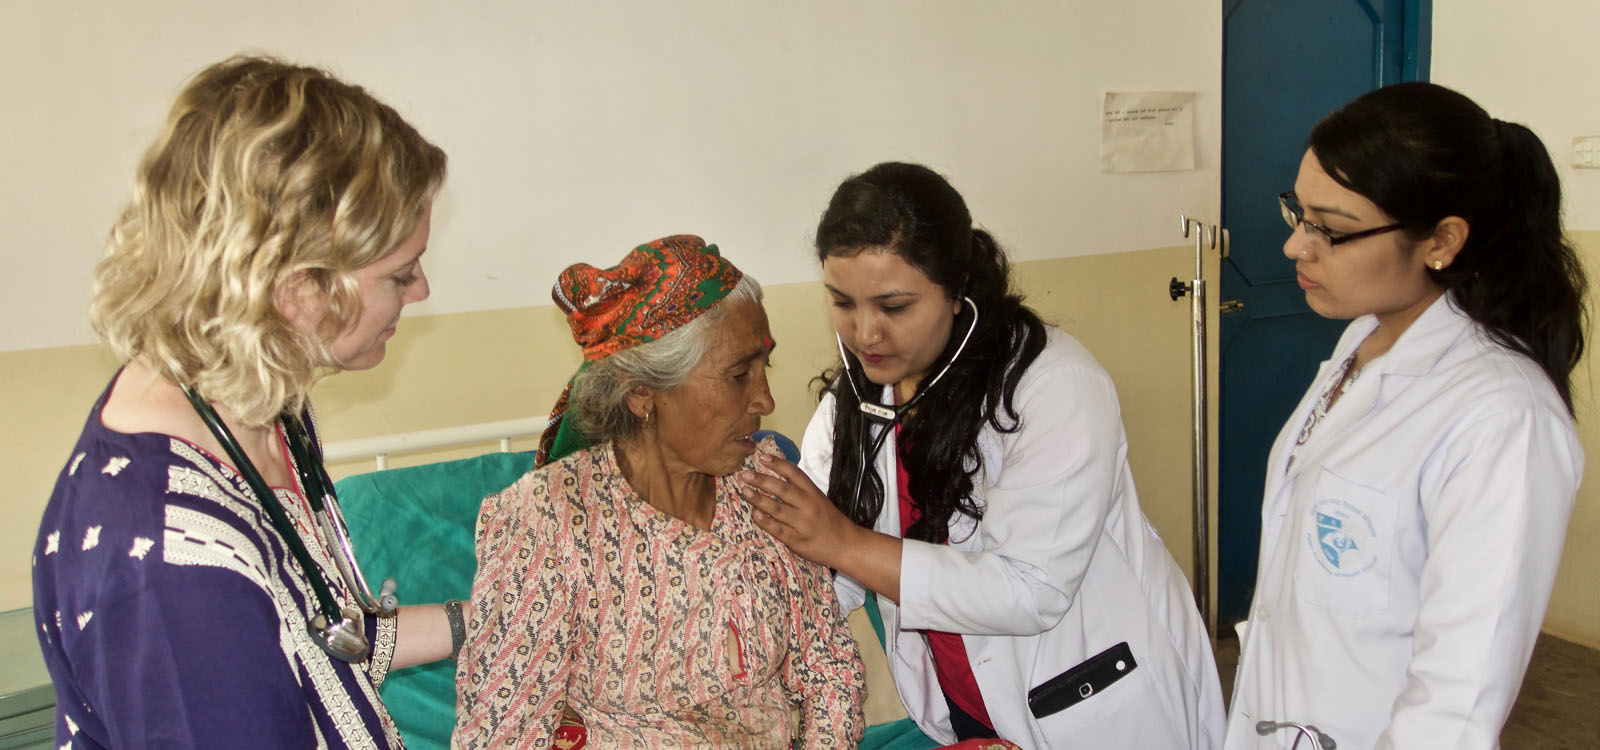 2 women in lab coats with a Nepalese female patient and a female volunteer